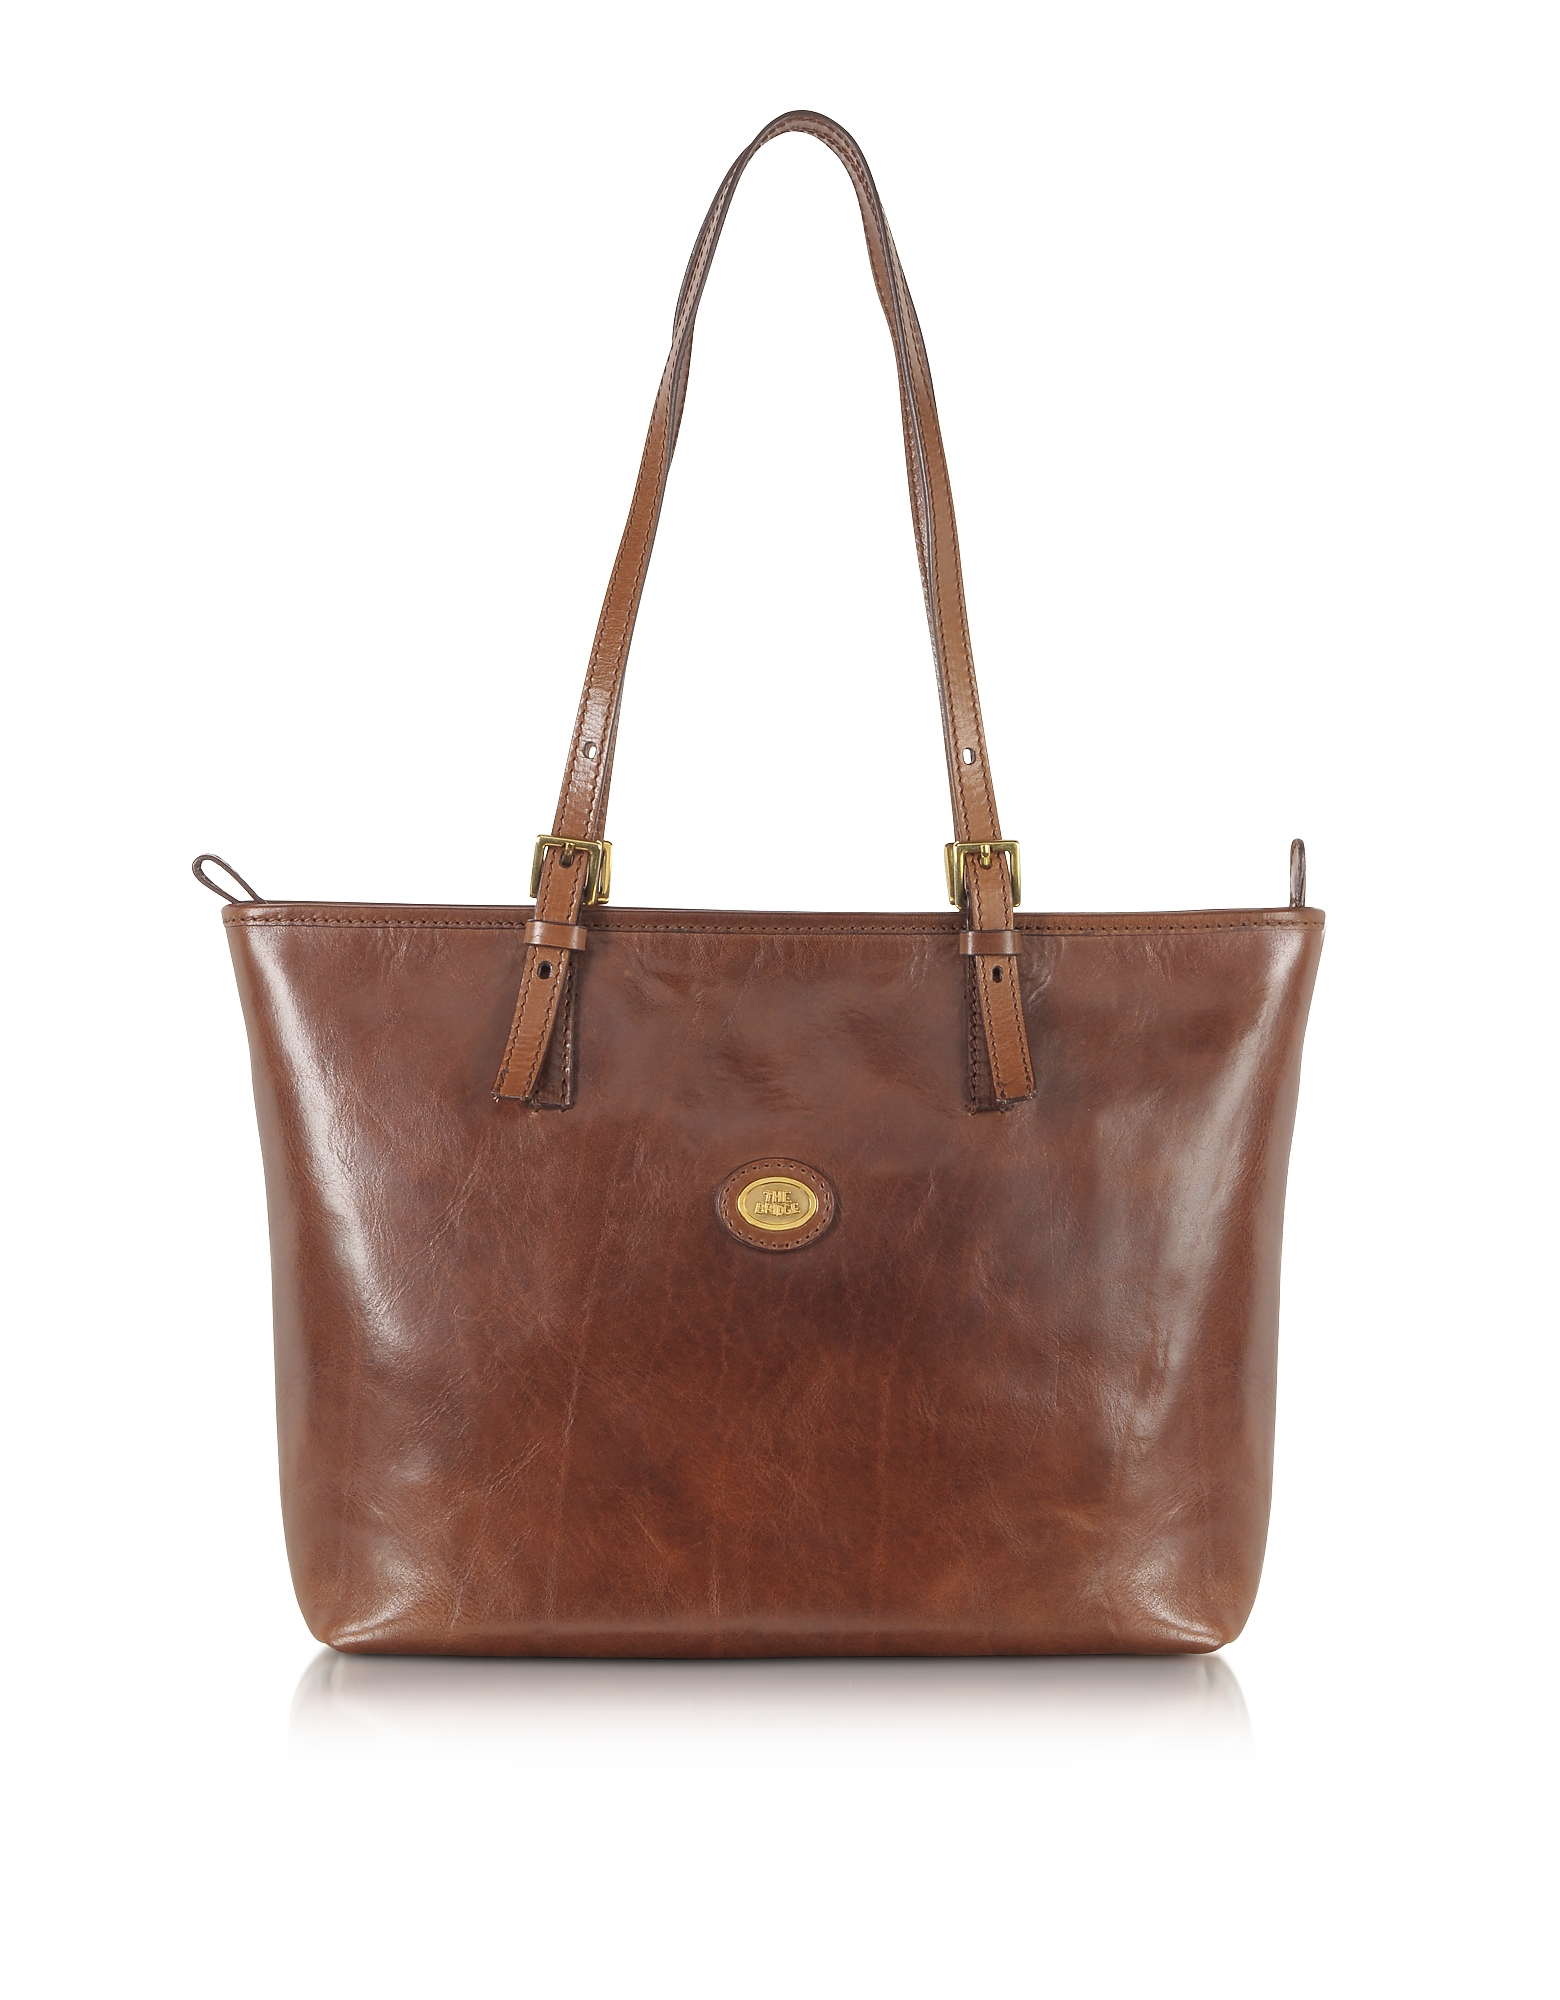 The Bridge Handbags, Story Donna Large Brown Leather Tote